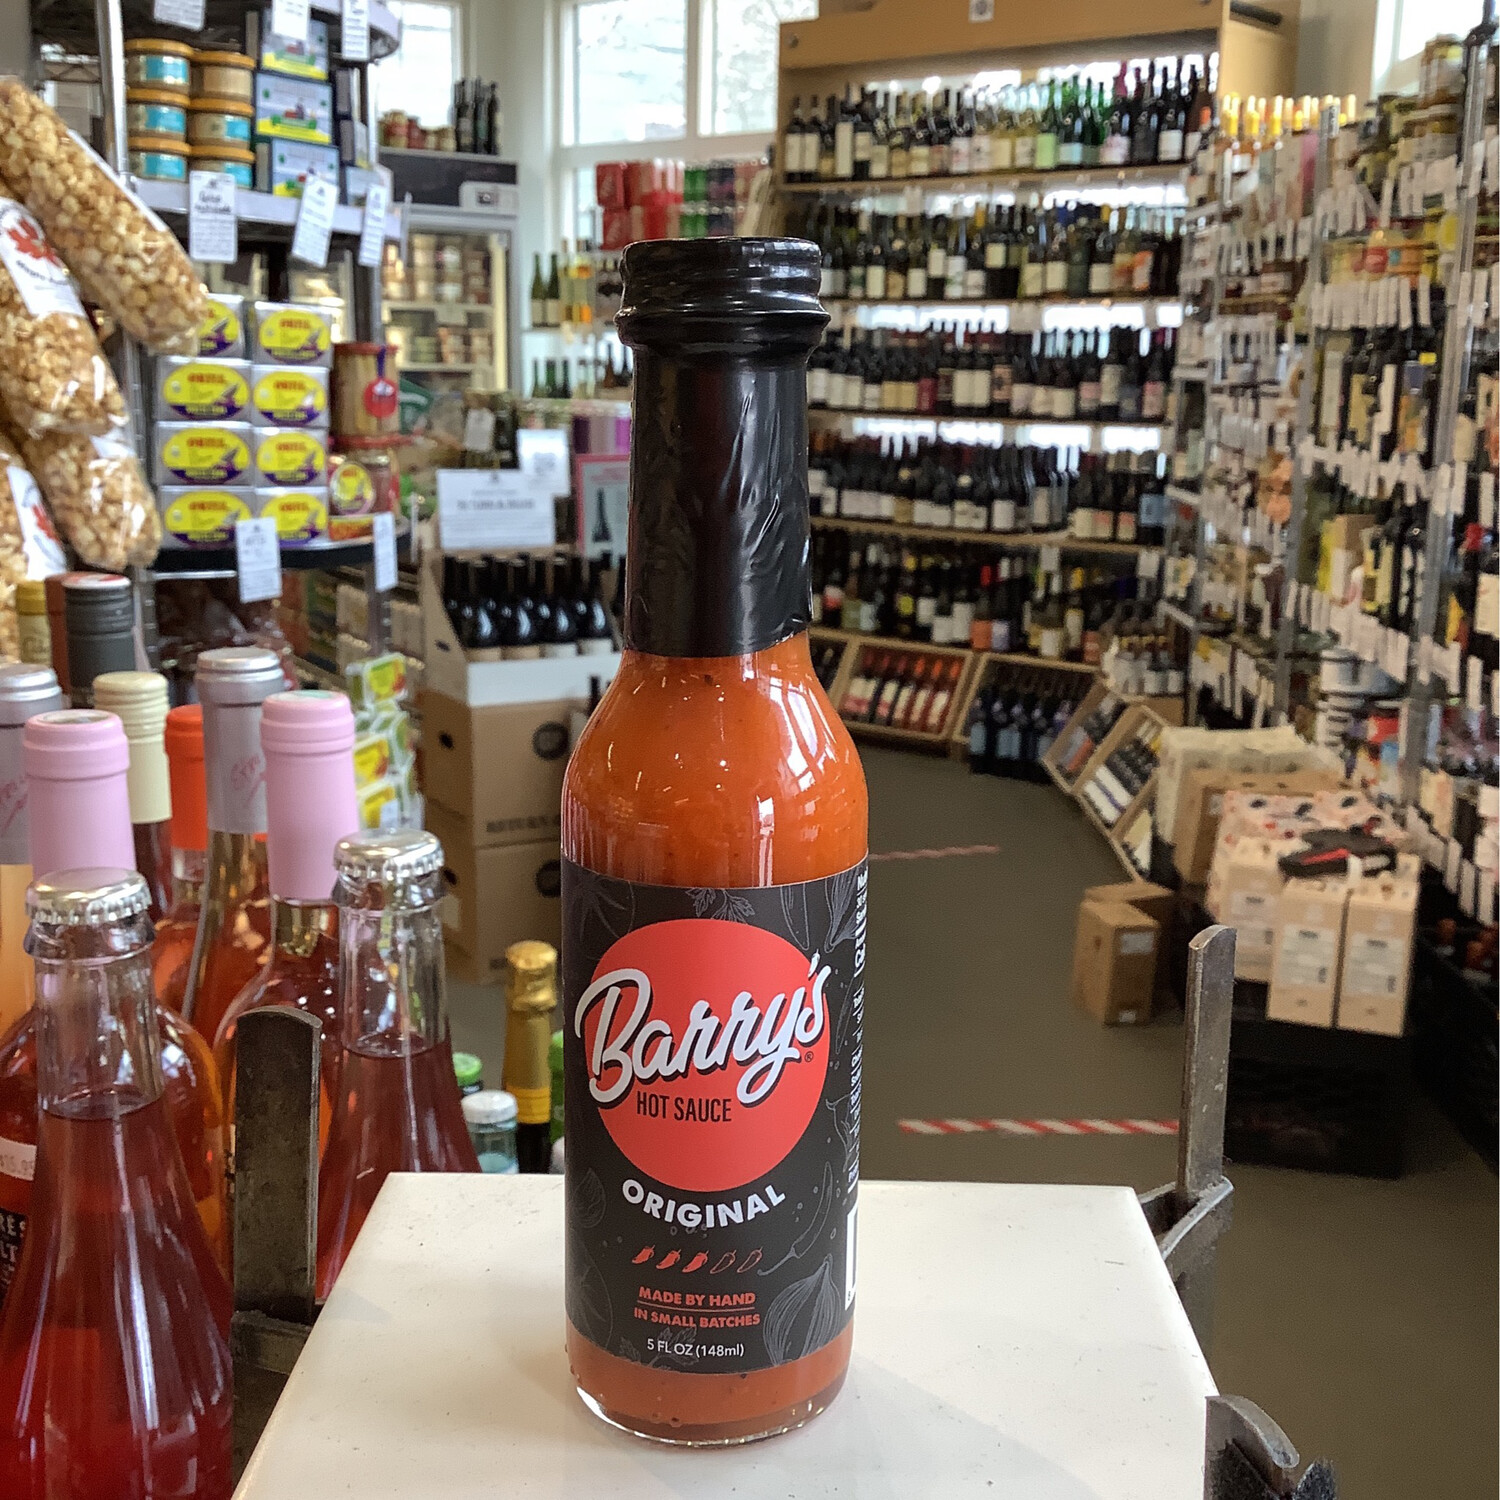 Barry's Hot Sauce Original